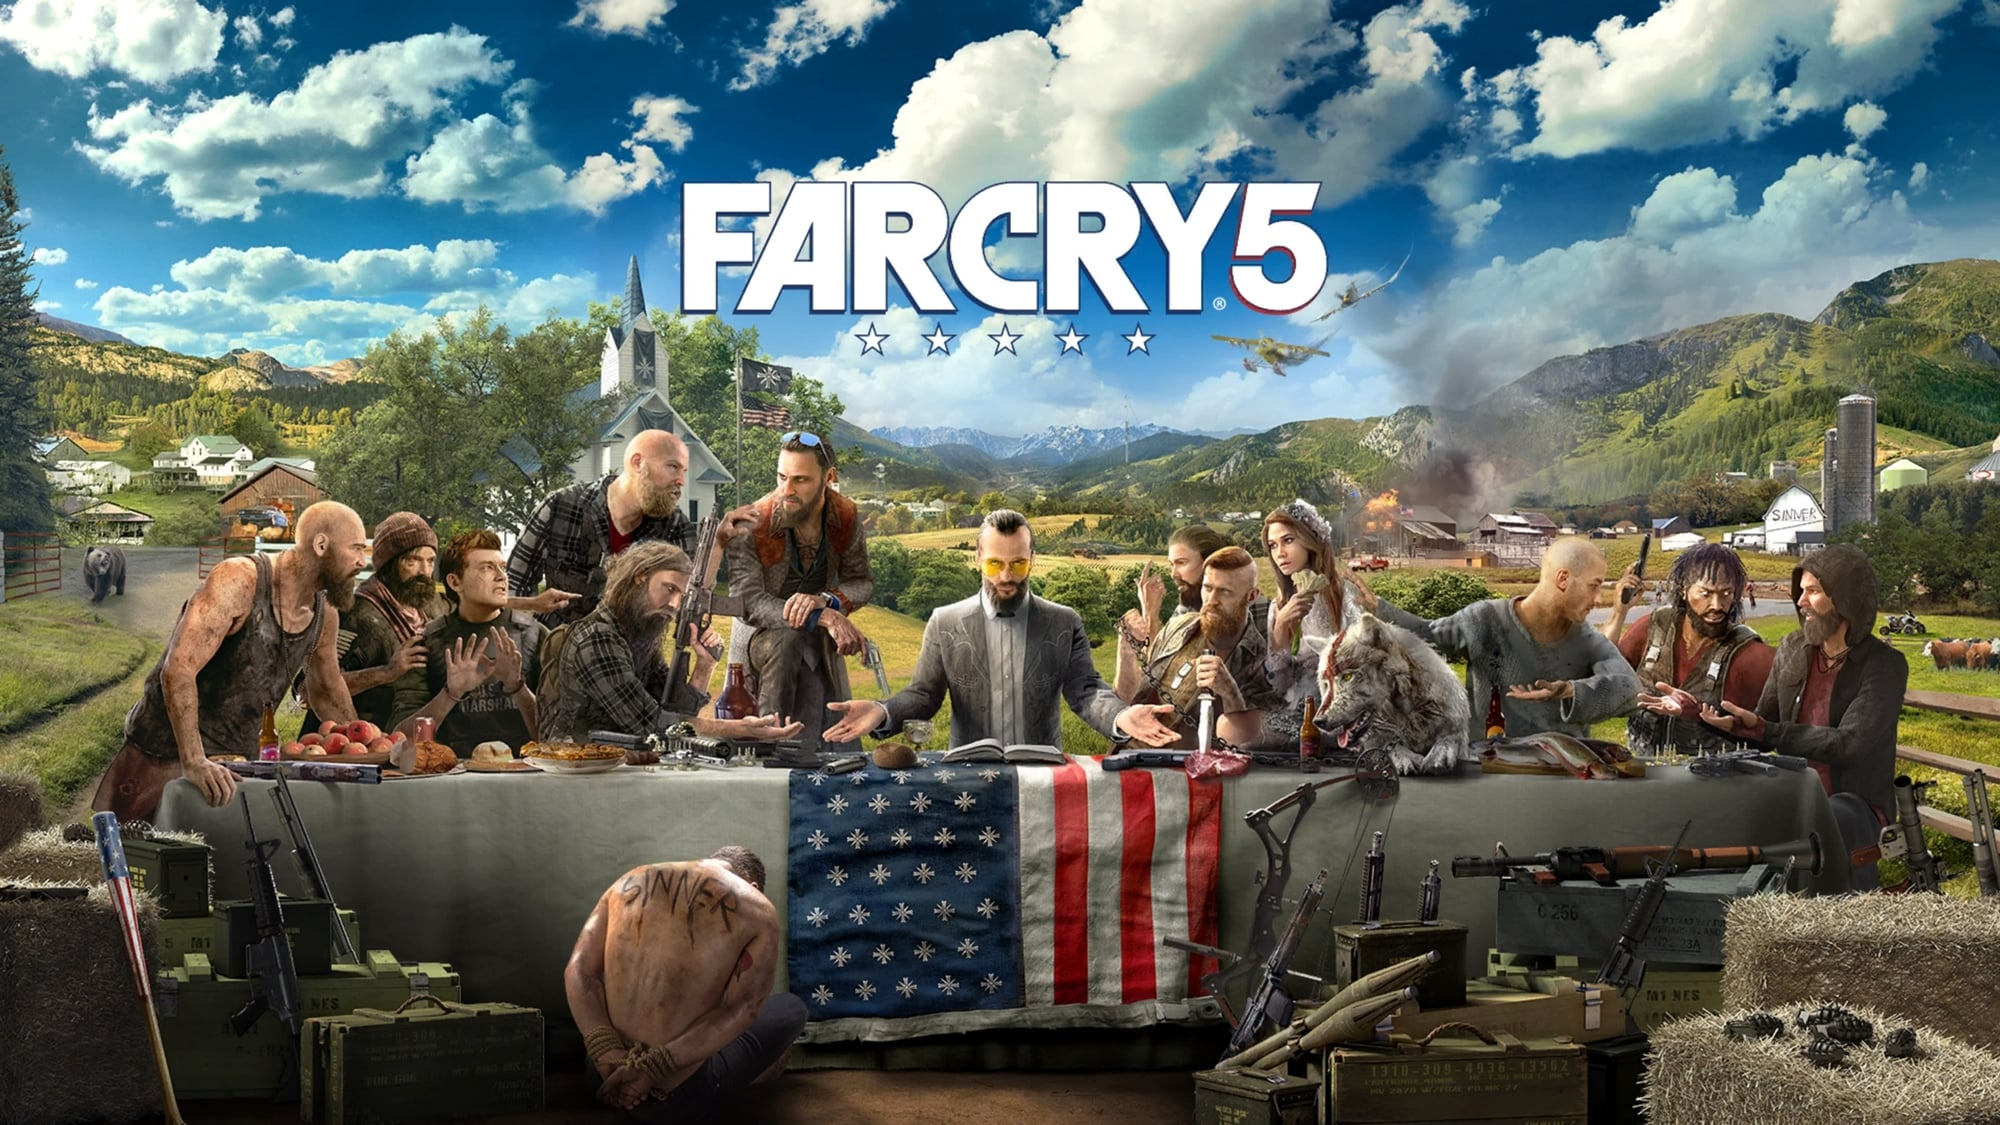 far cry 5 pc download free